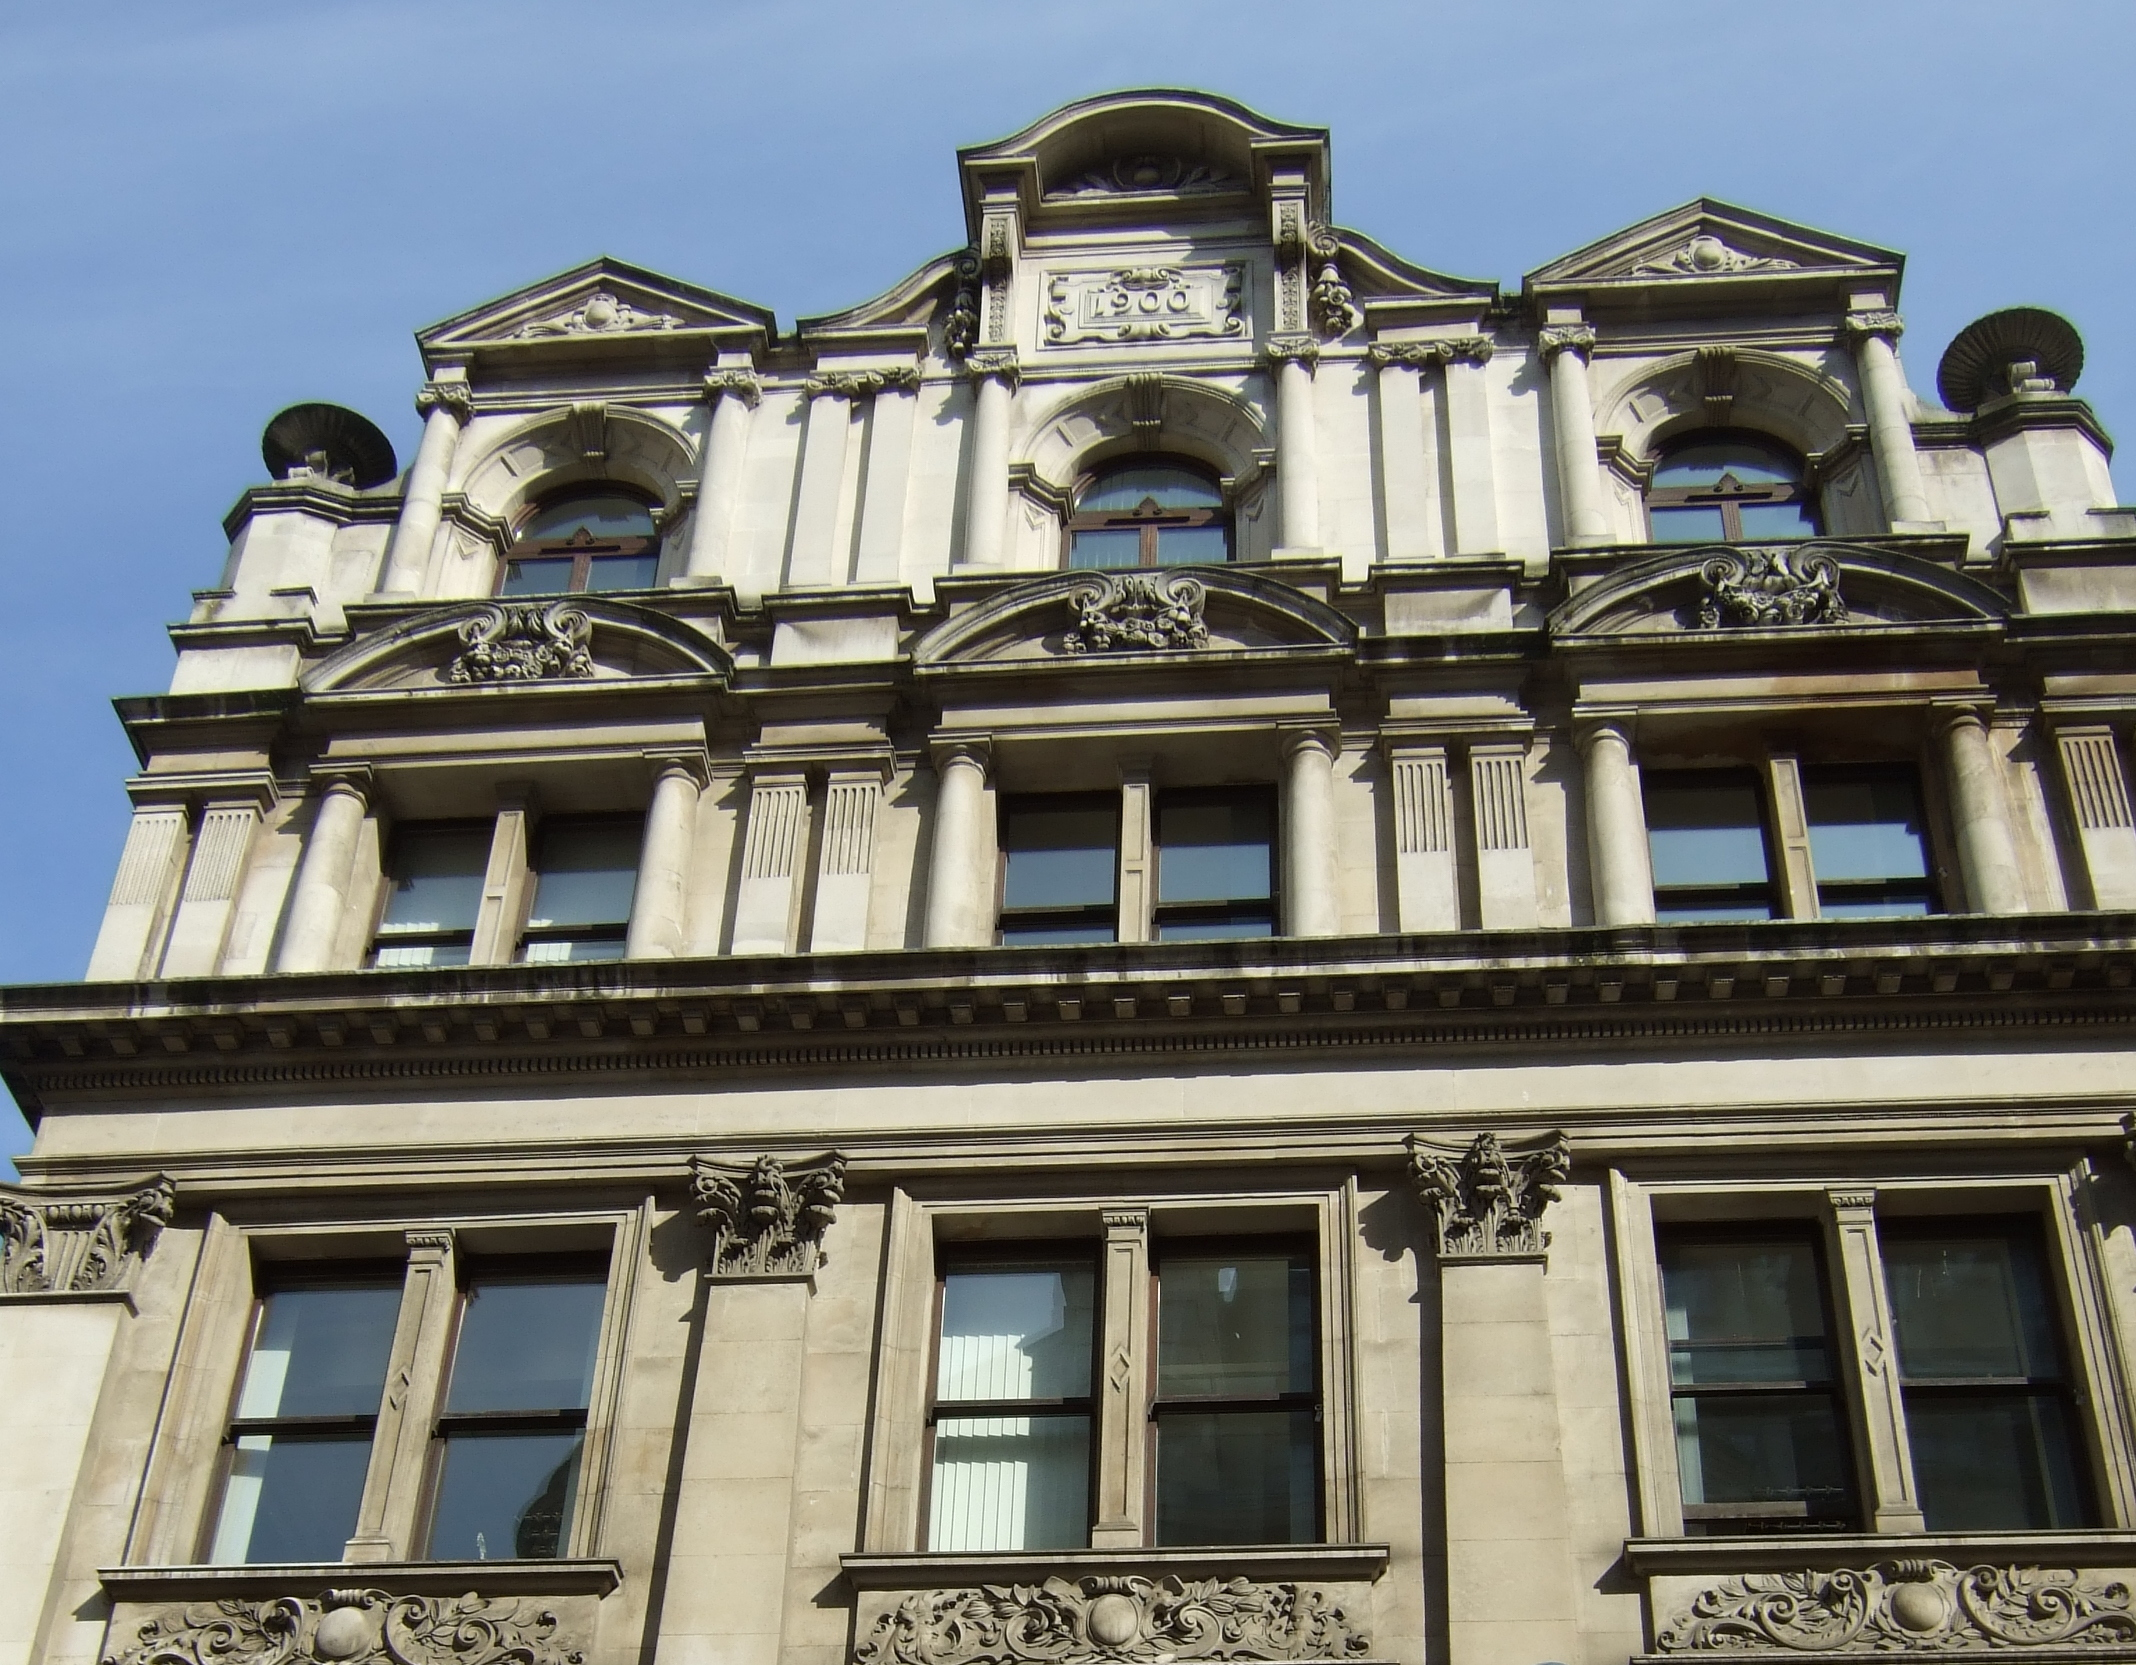 Upper storeys of Fenchurch Street aspect showing more eclcticist detailing